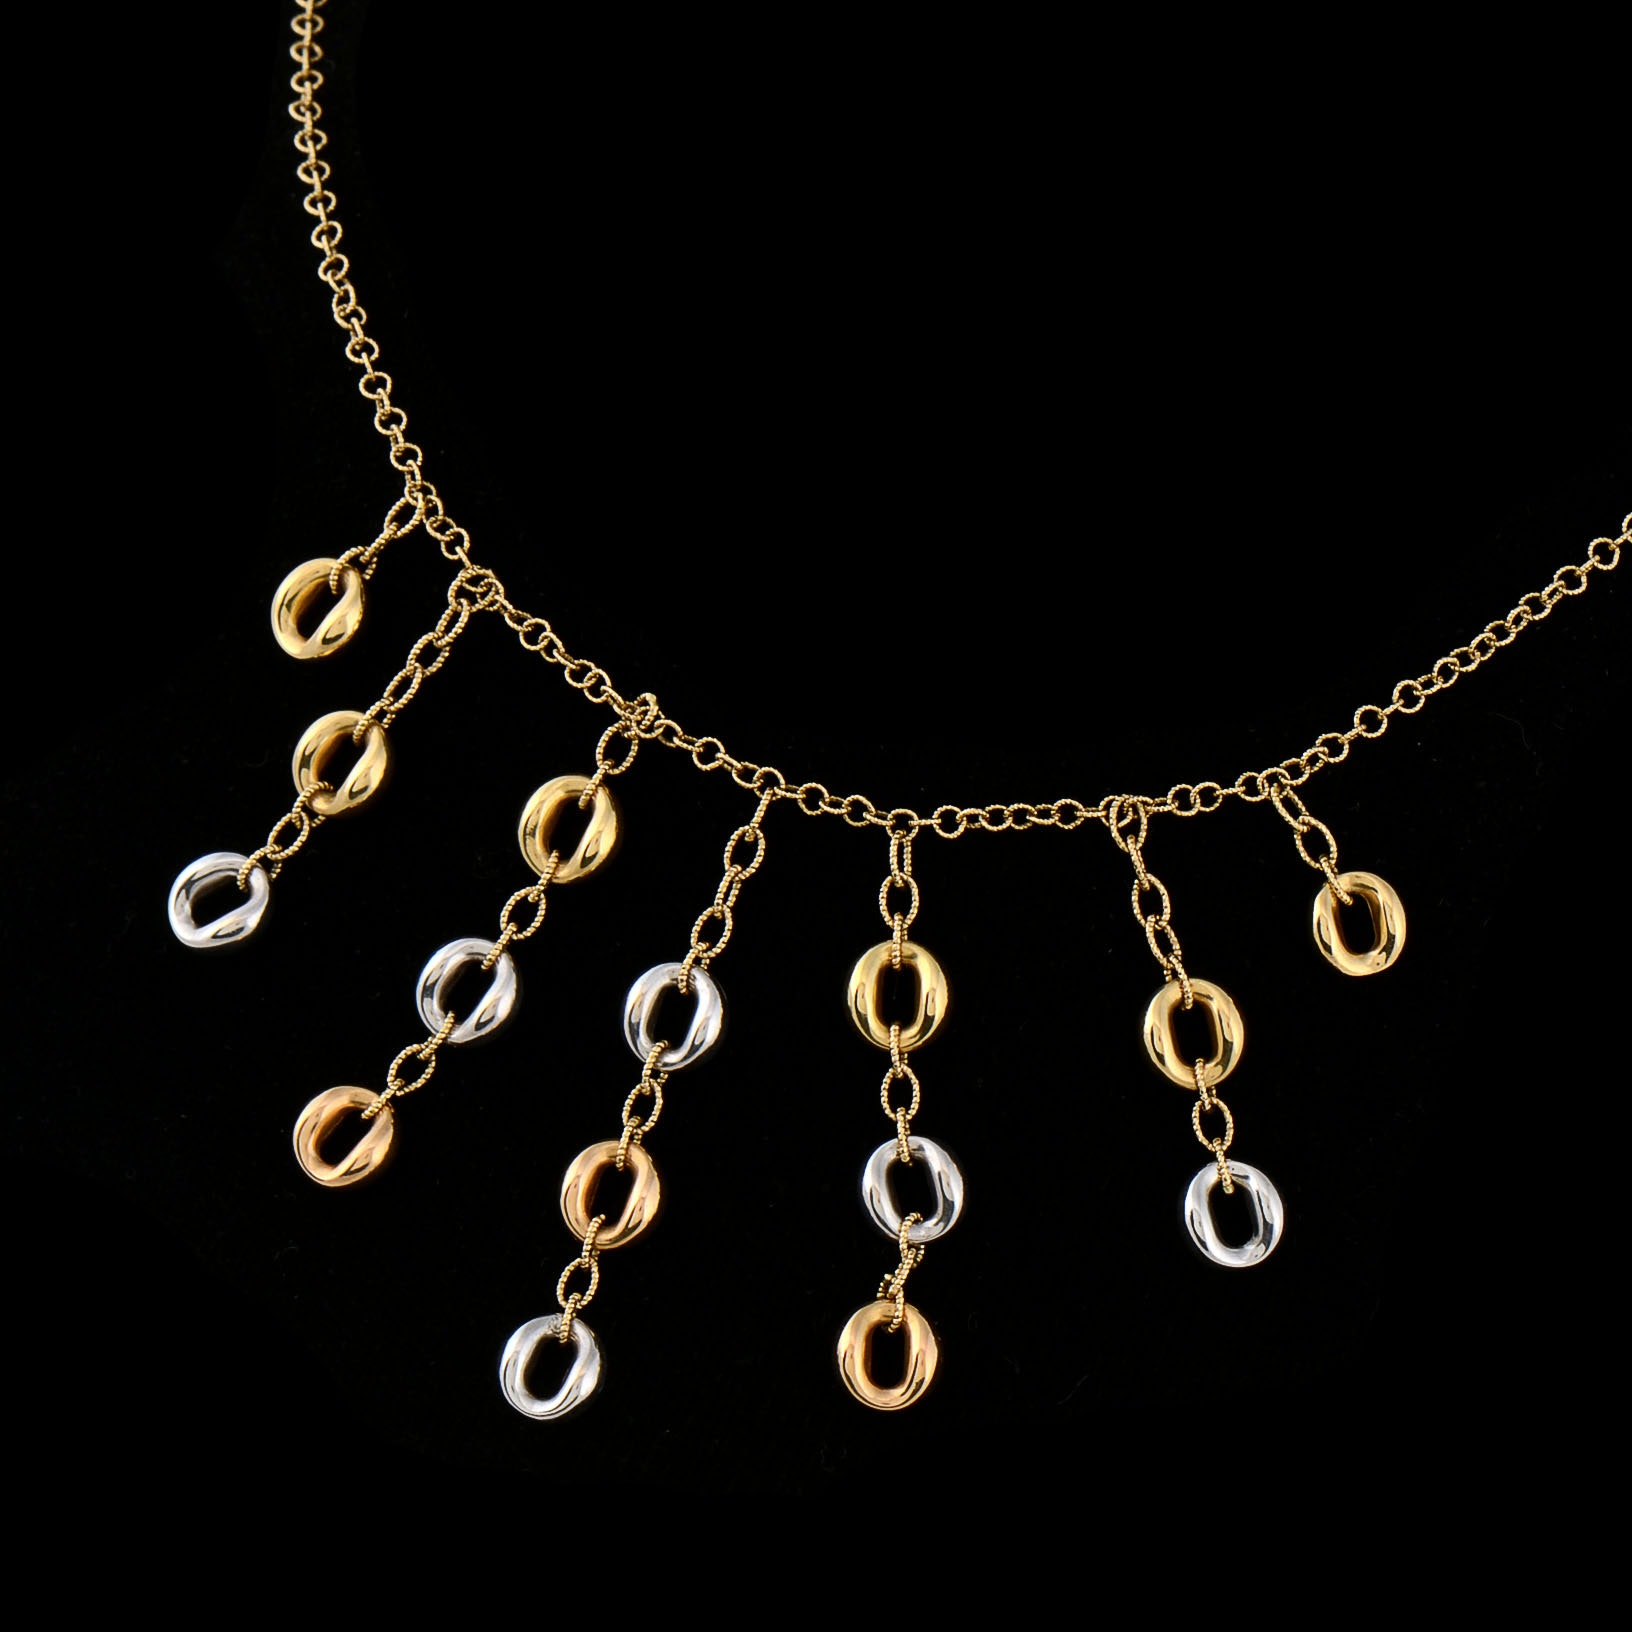 Roberto Coin 18K Two Tone Gold, Diamond, and Ruby Link Necklace